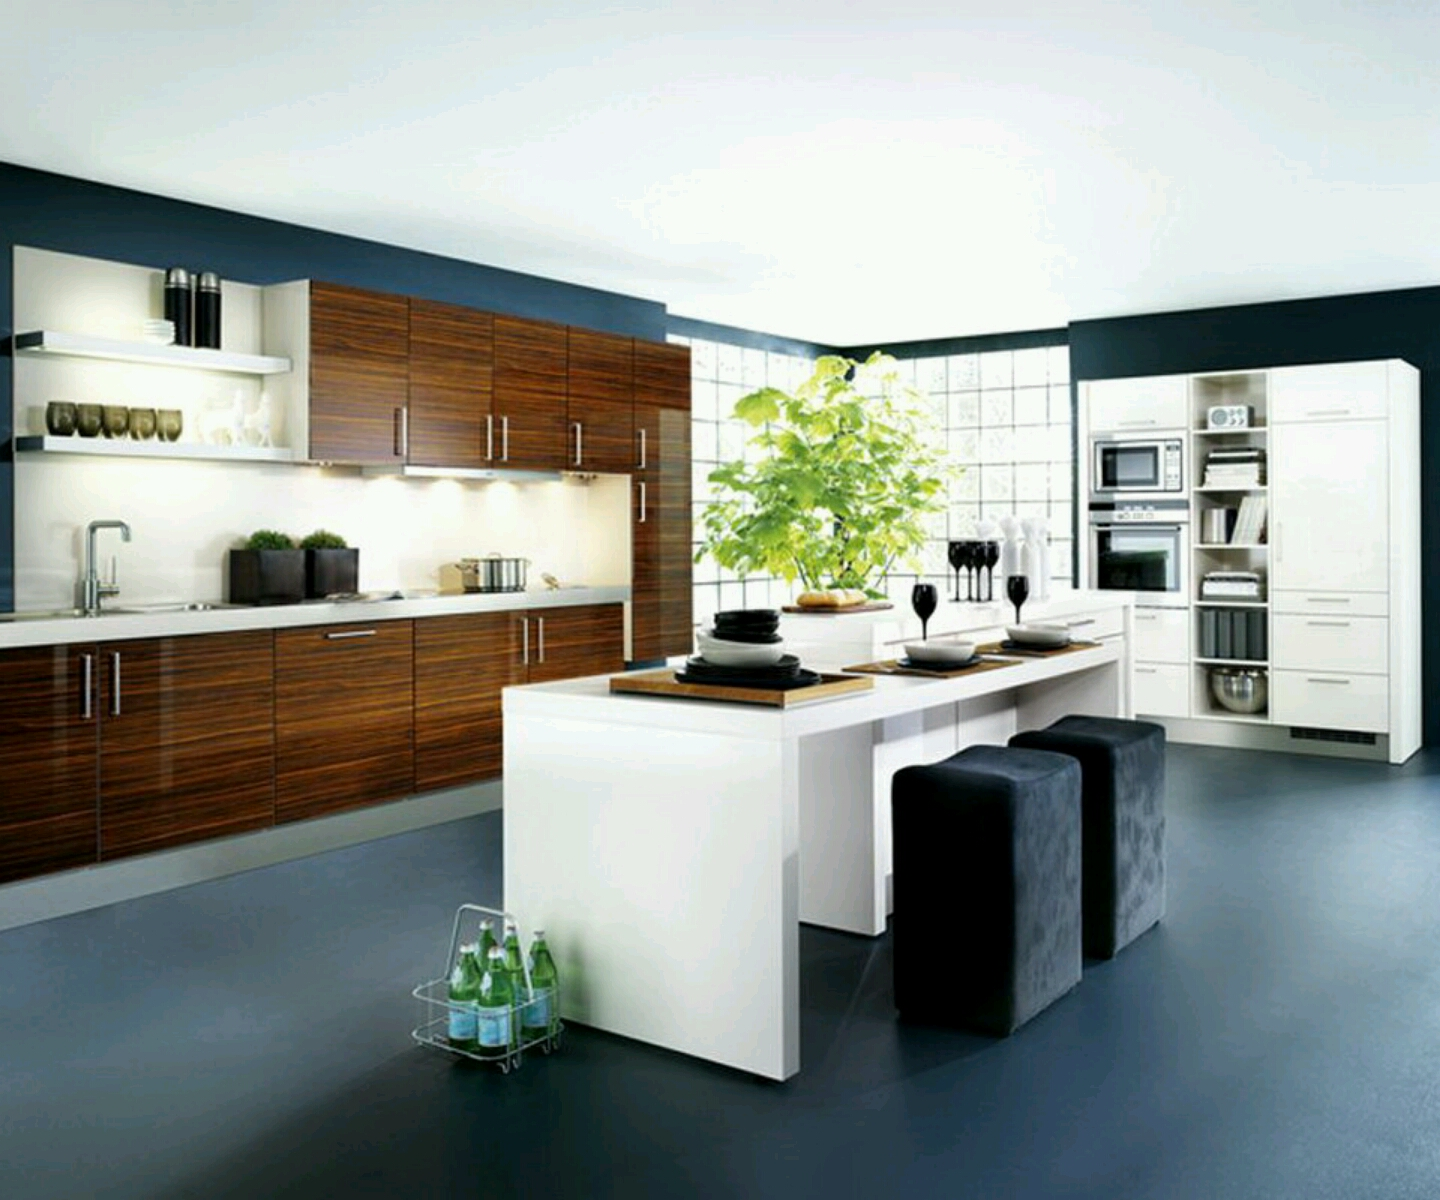 New home designs latest kitchen cabinets designs modern for New style kitchen images